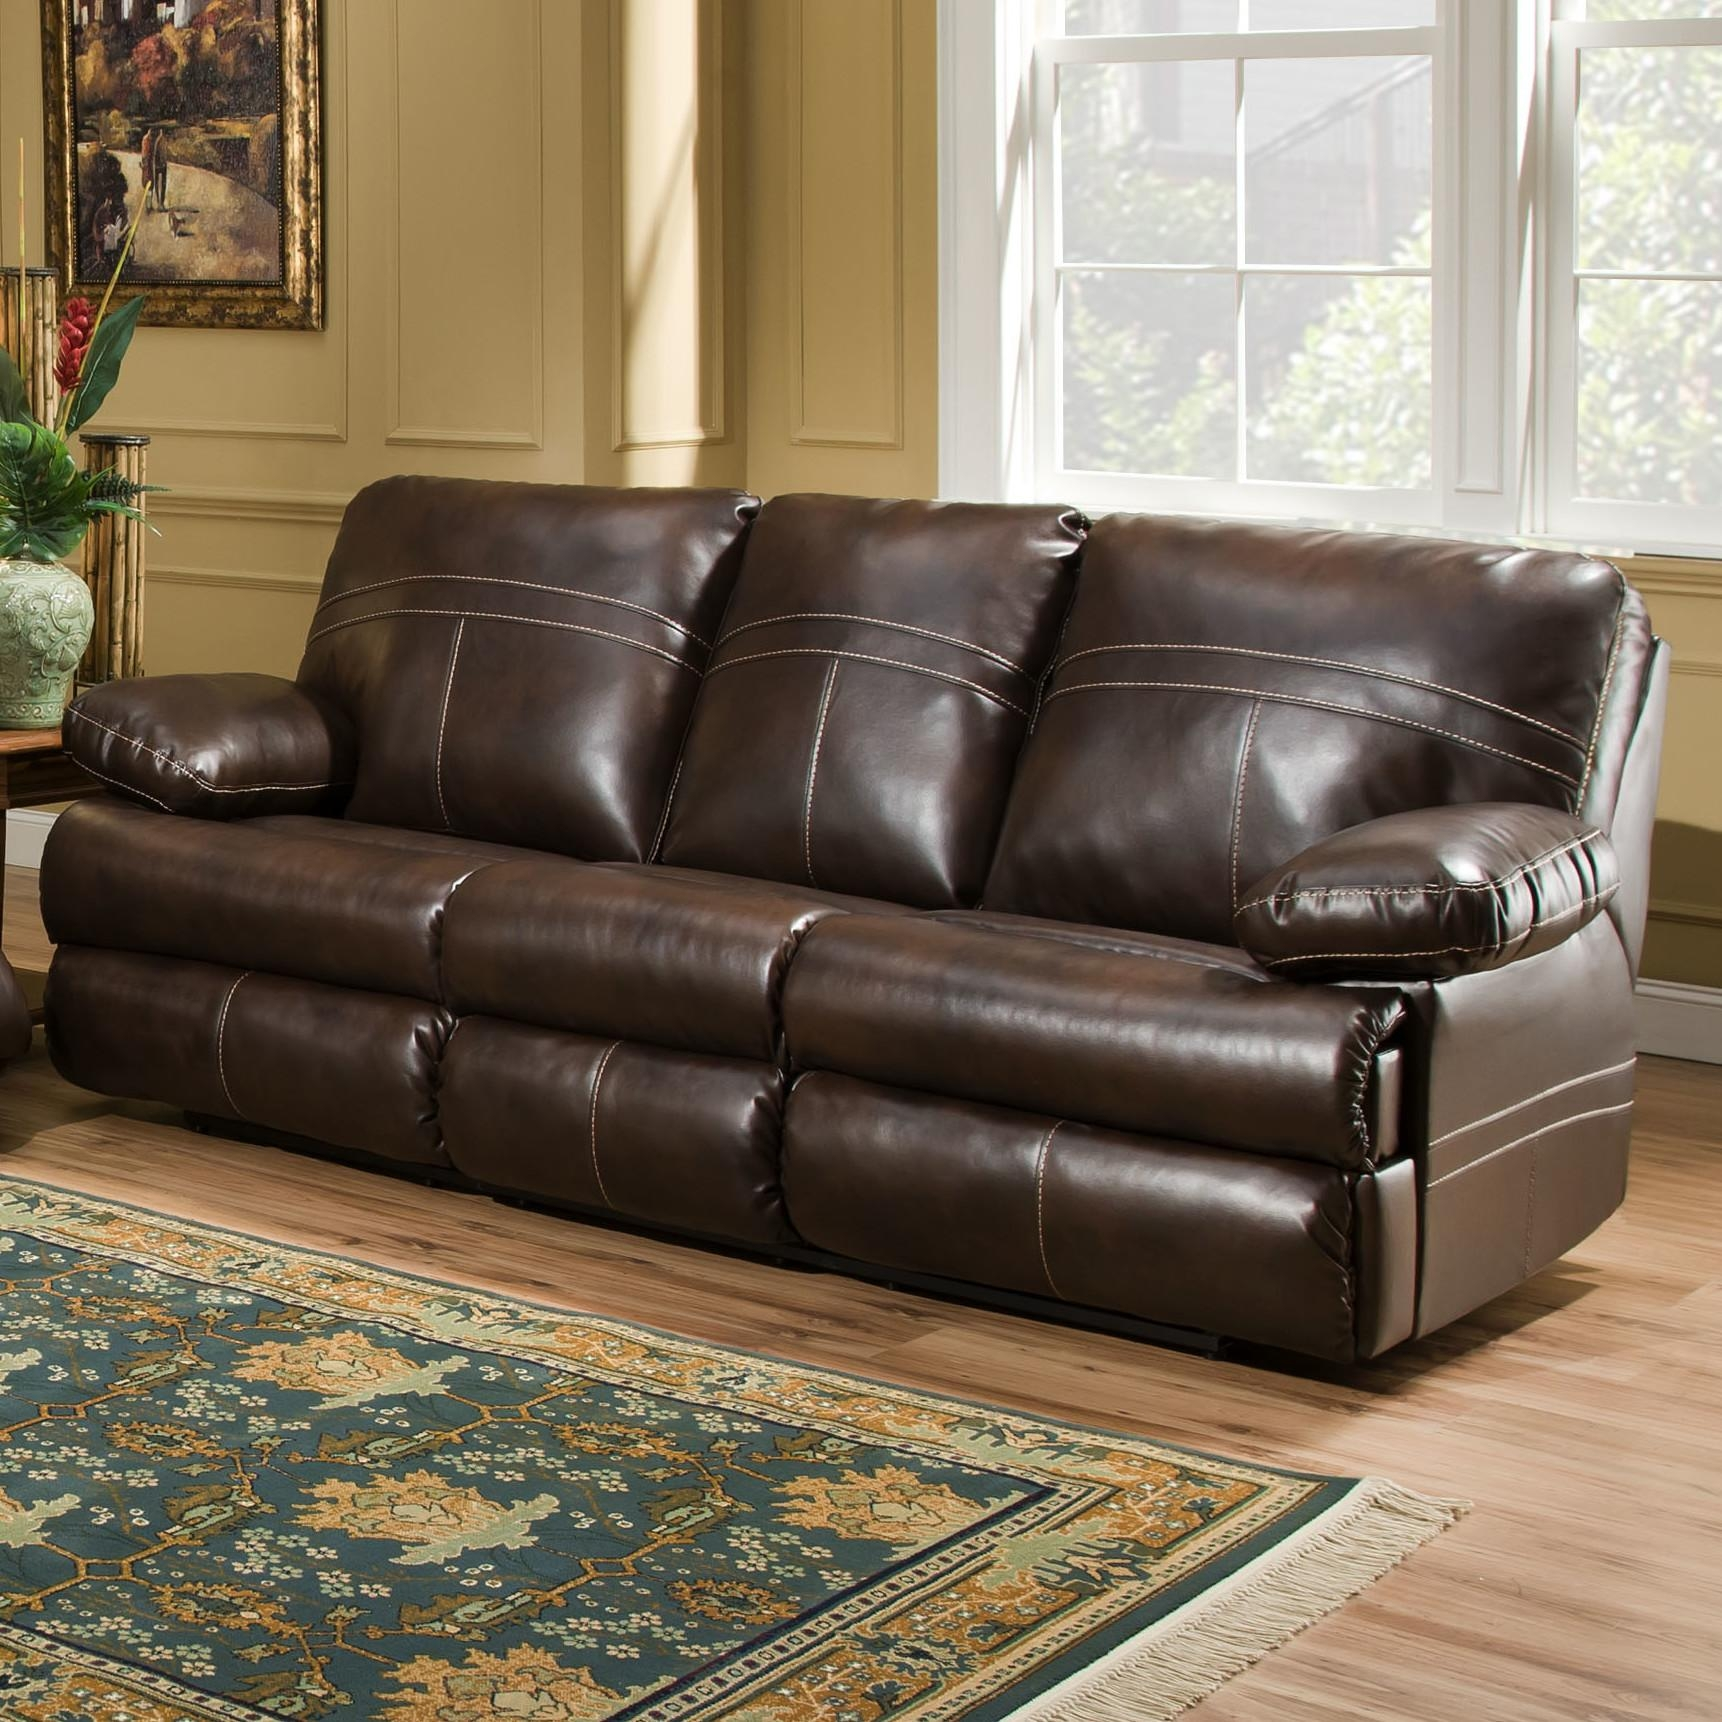 Furniture: Queen Size Simmons Sleeper Sofa For Stunning Home Throughout Simmons Sofa Beds (Image 3 of 20)